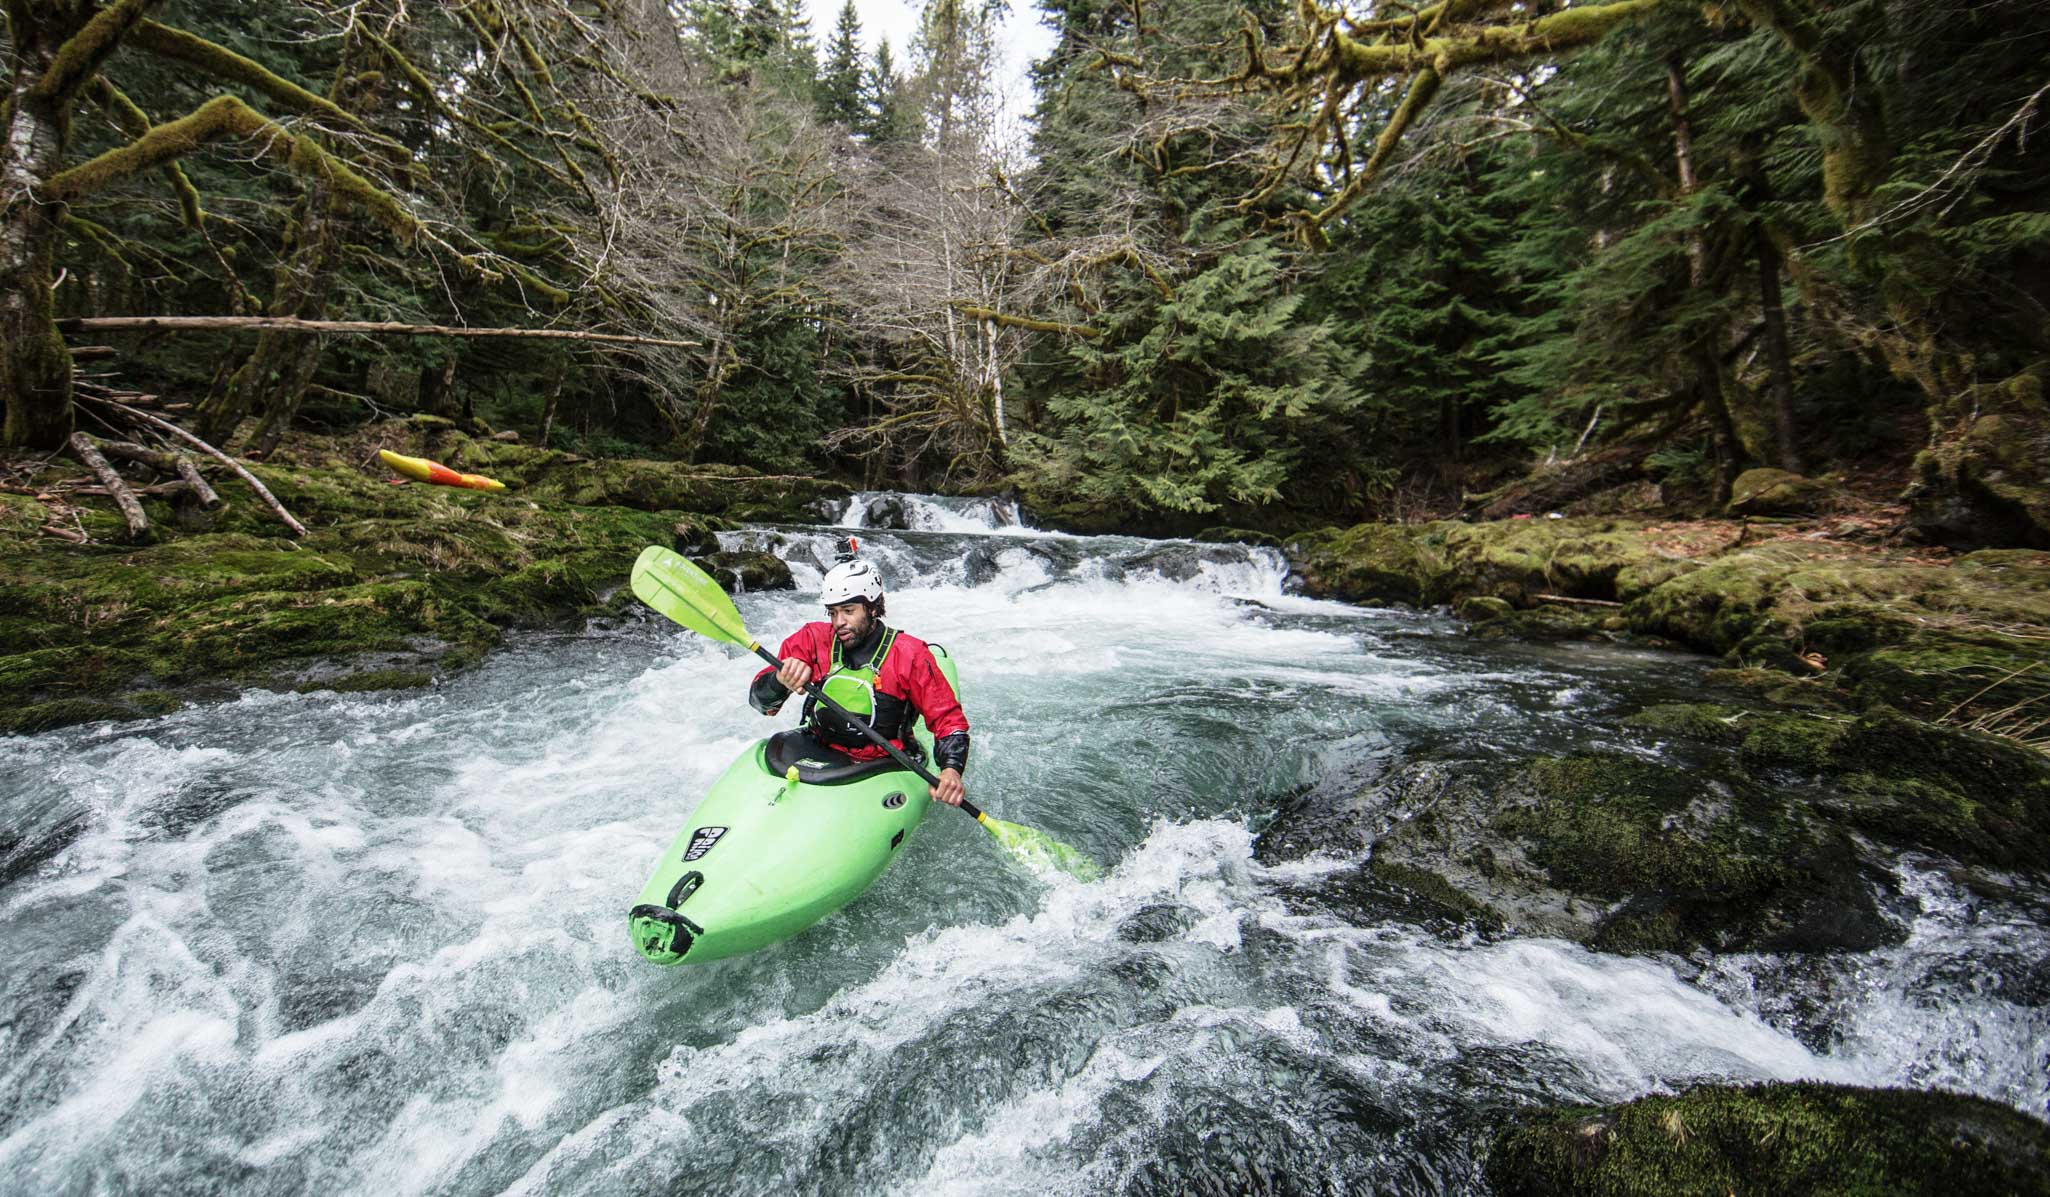 Kayaker in the Edey of Kalama Falls